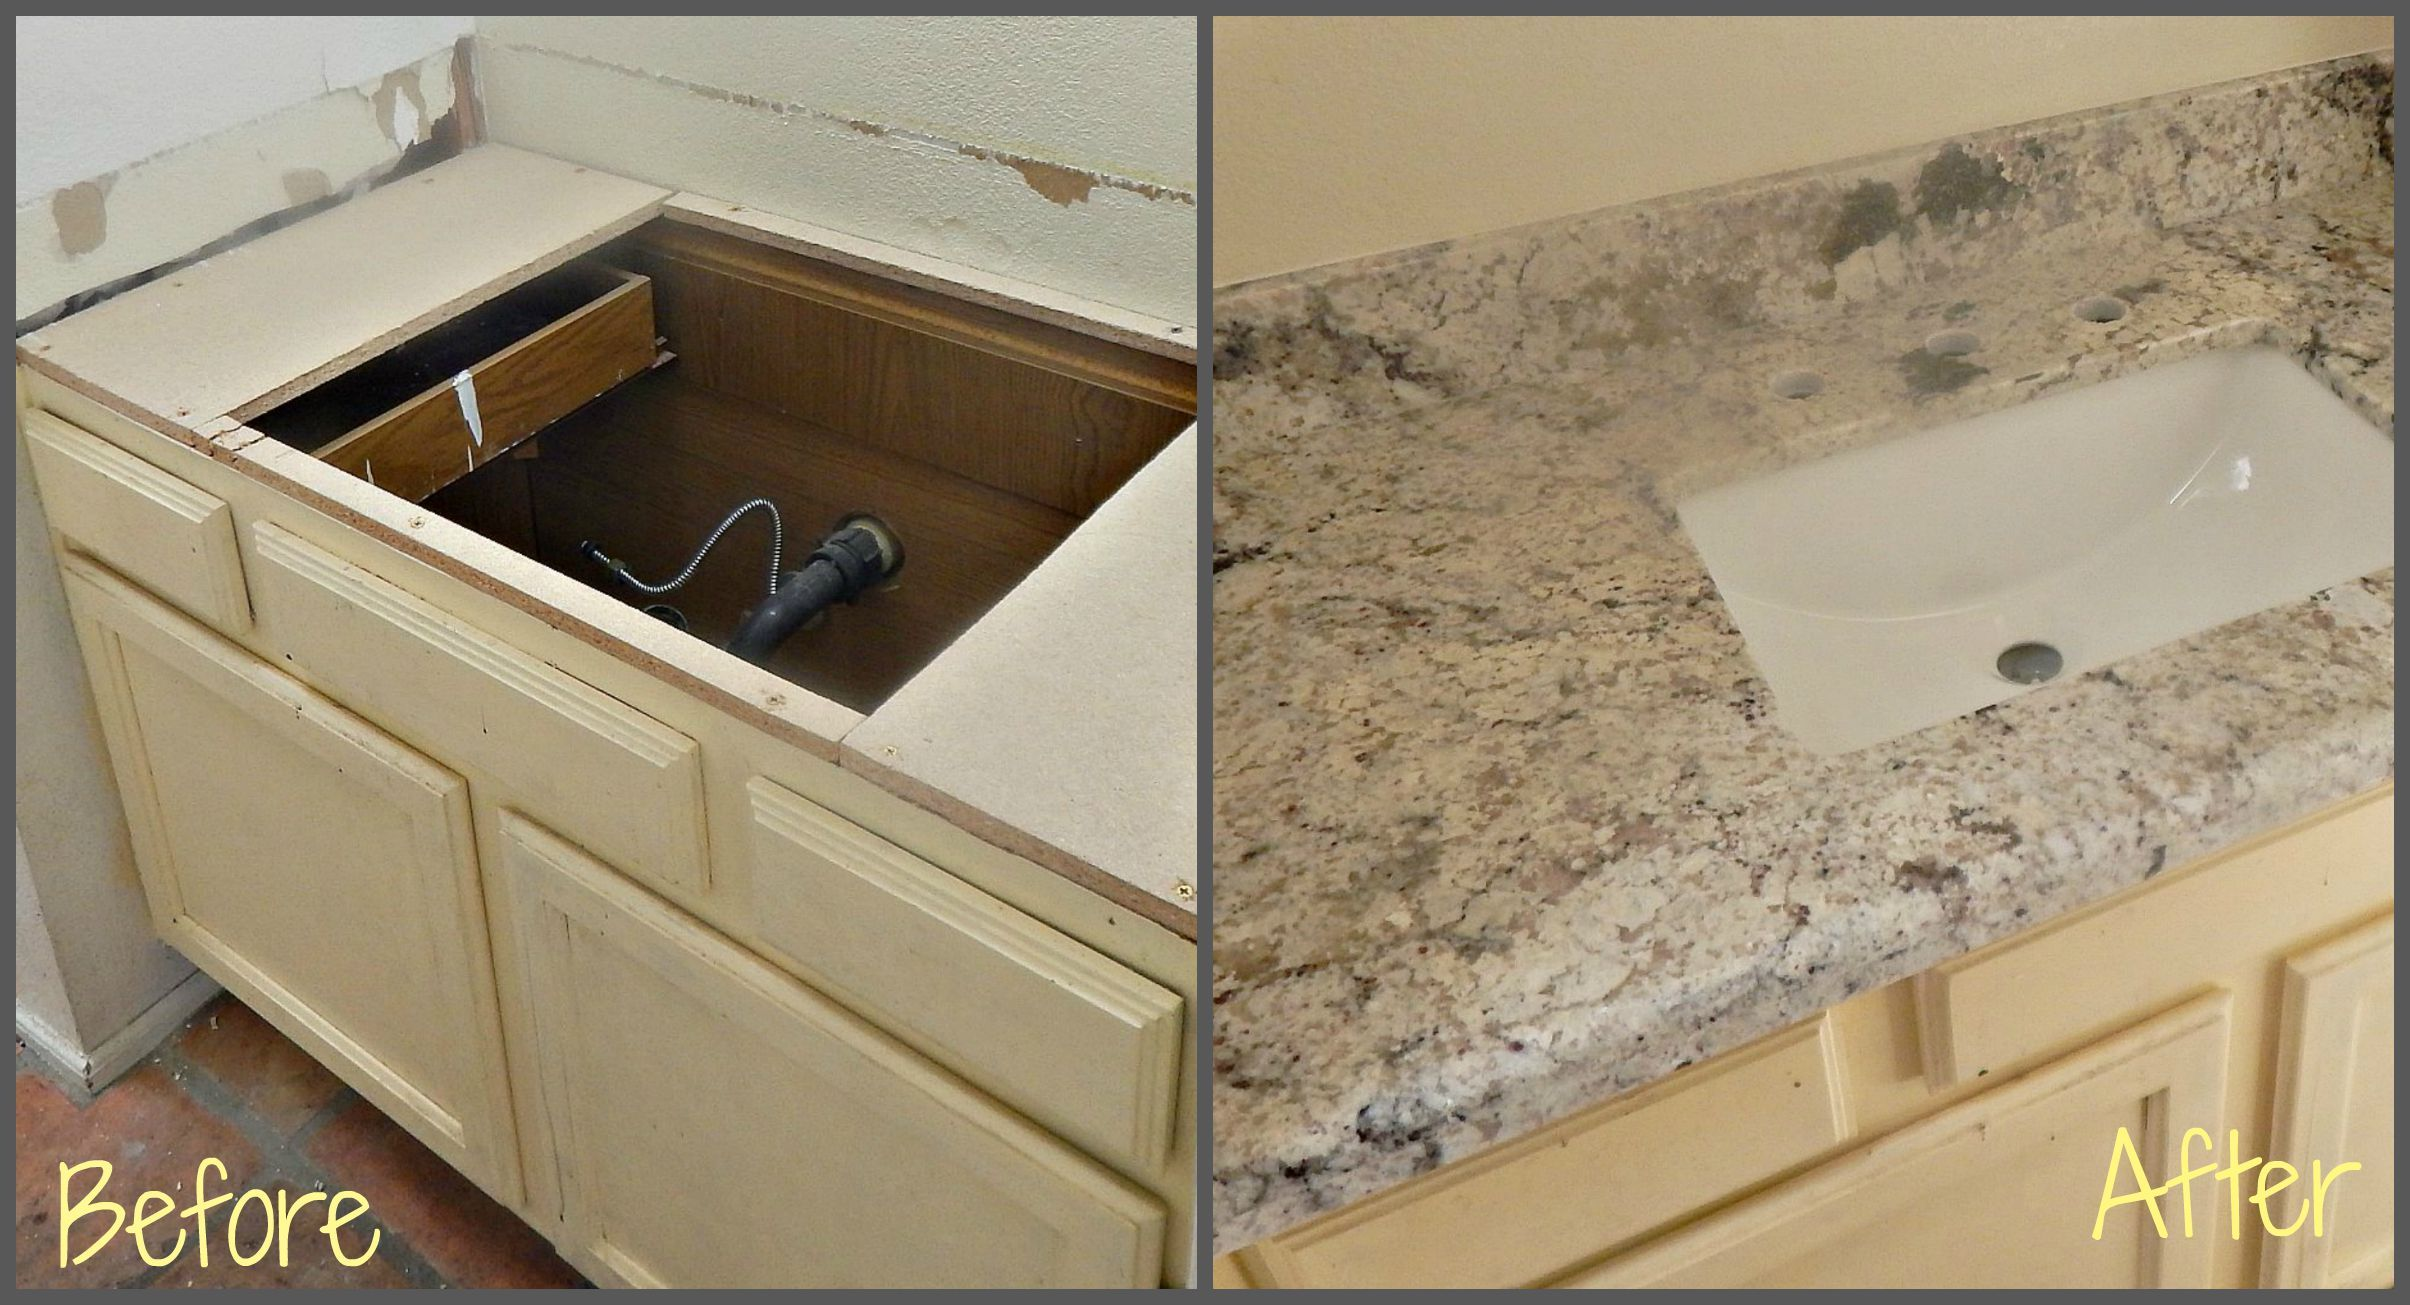 Countertop Remodel With White Springs Granite Under Mount White Square Sink And Demi Bullnose Edge Countertop Remodel White Springs Granite Countertops